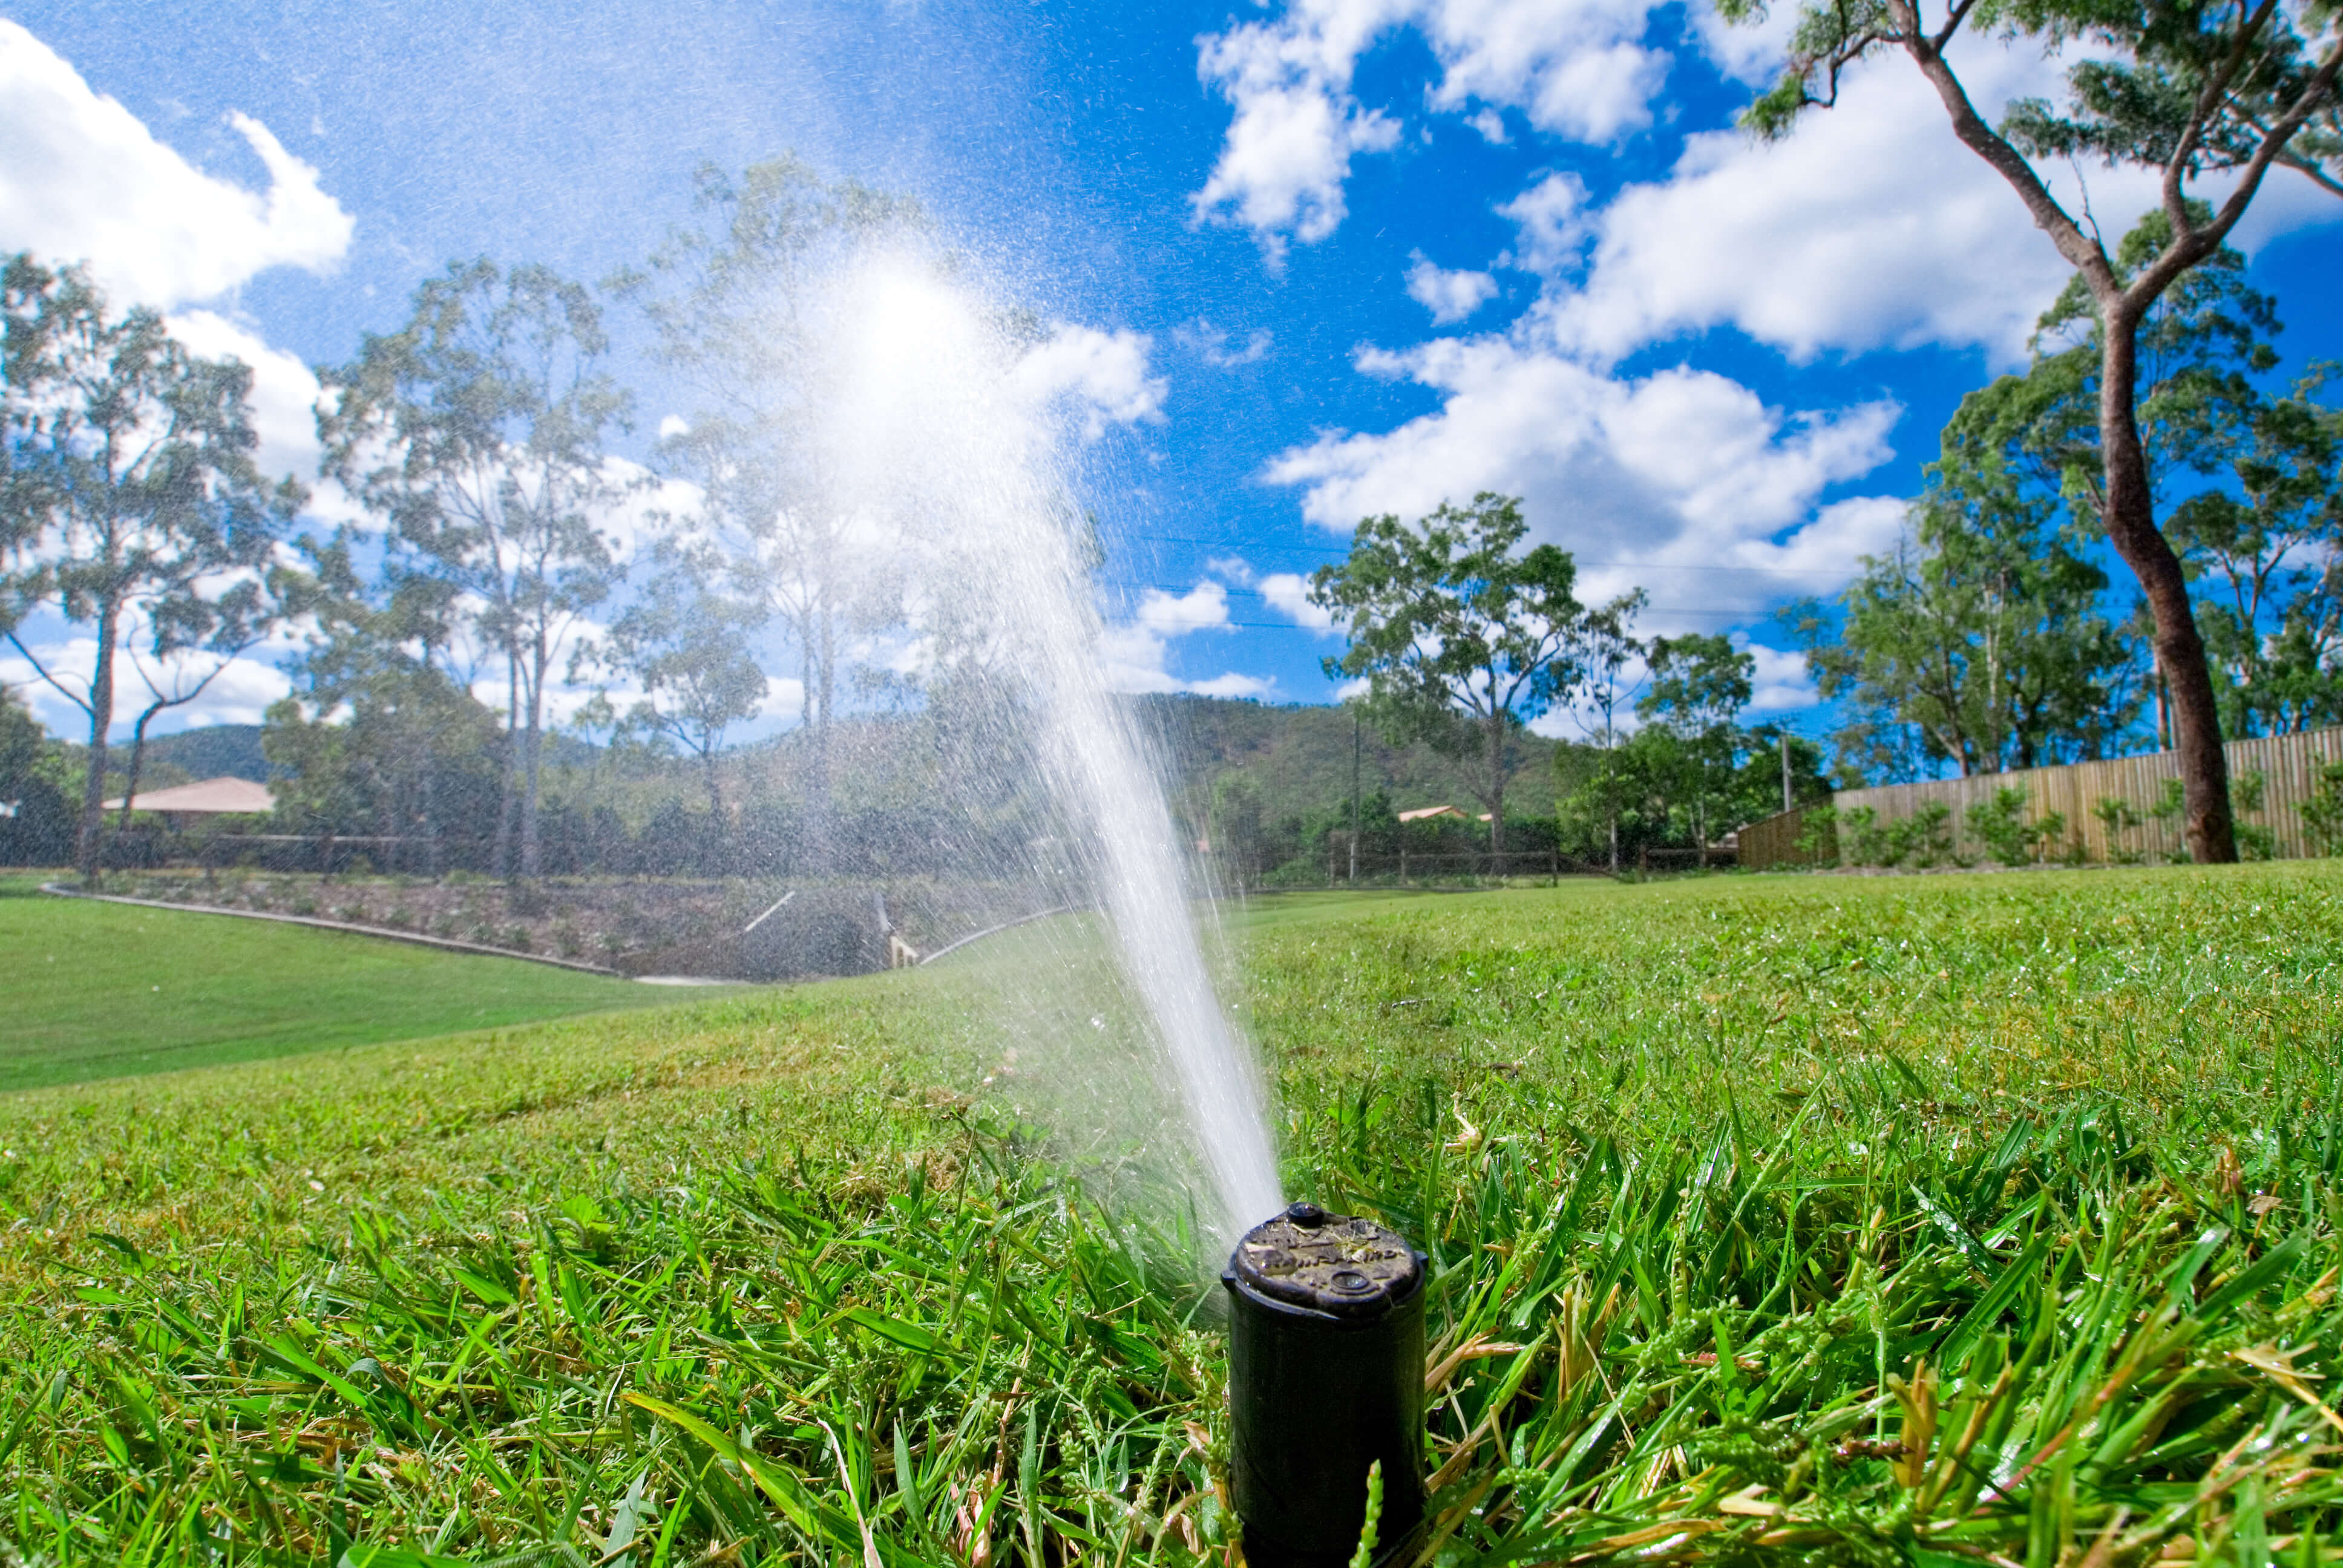 Watering Grass Lawn